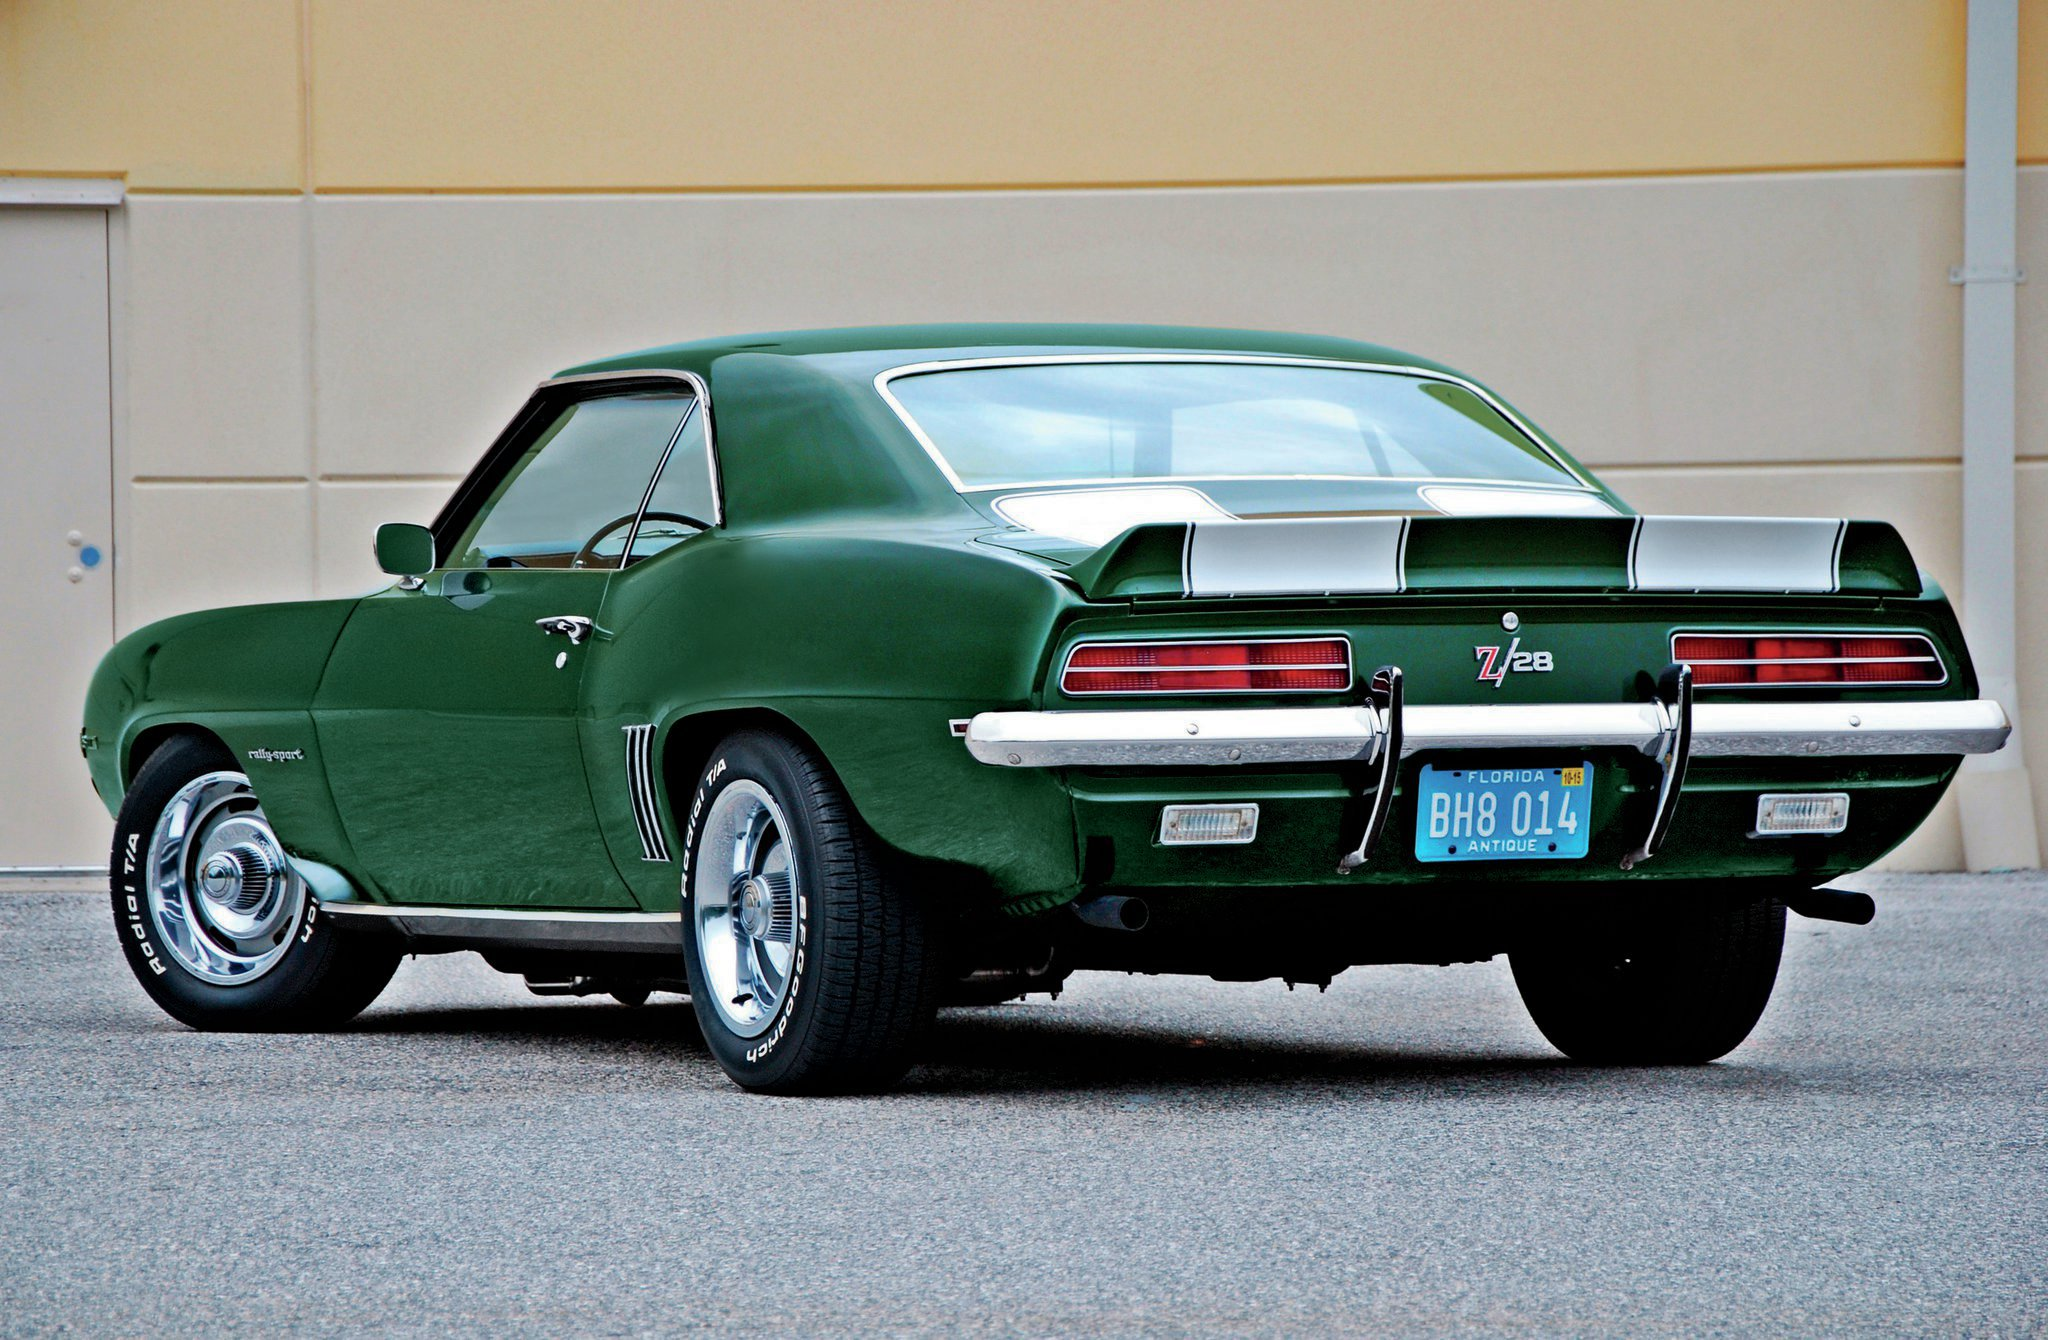 Ken Etten knew exactly what he wanted when he ordered his Camaro in October 1968: a Z/28 with the RS appearance package, Fathom Green paint, white stripes, and a green interior. Except for a 1976 repaint, it remains in remarkably well-kept, original condition.